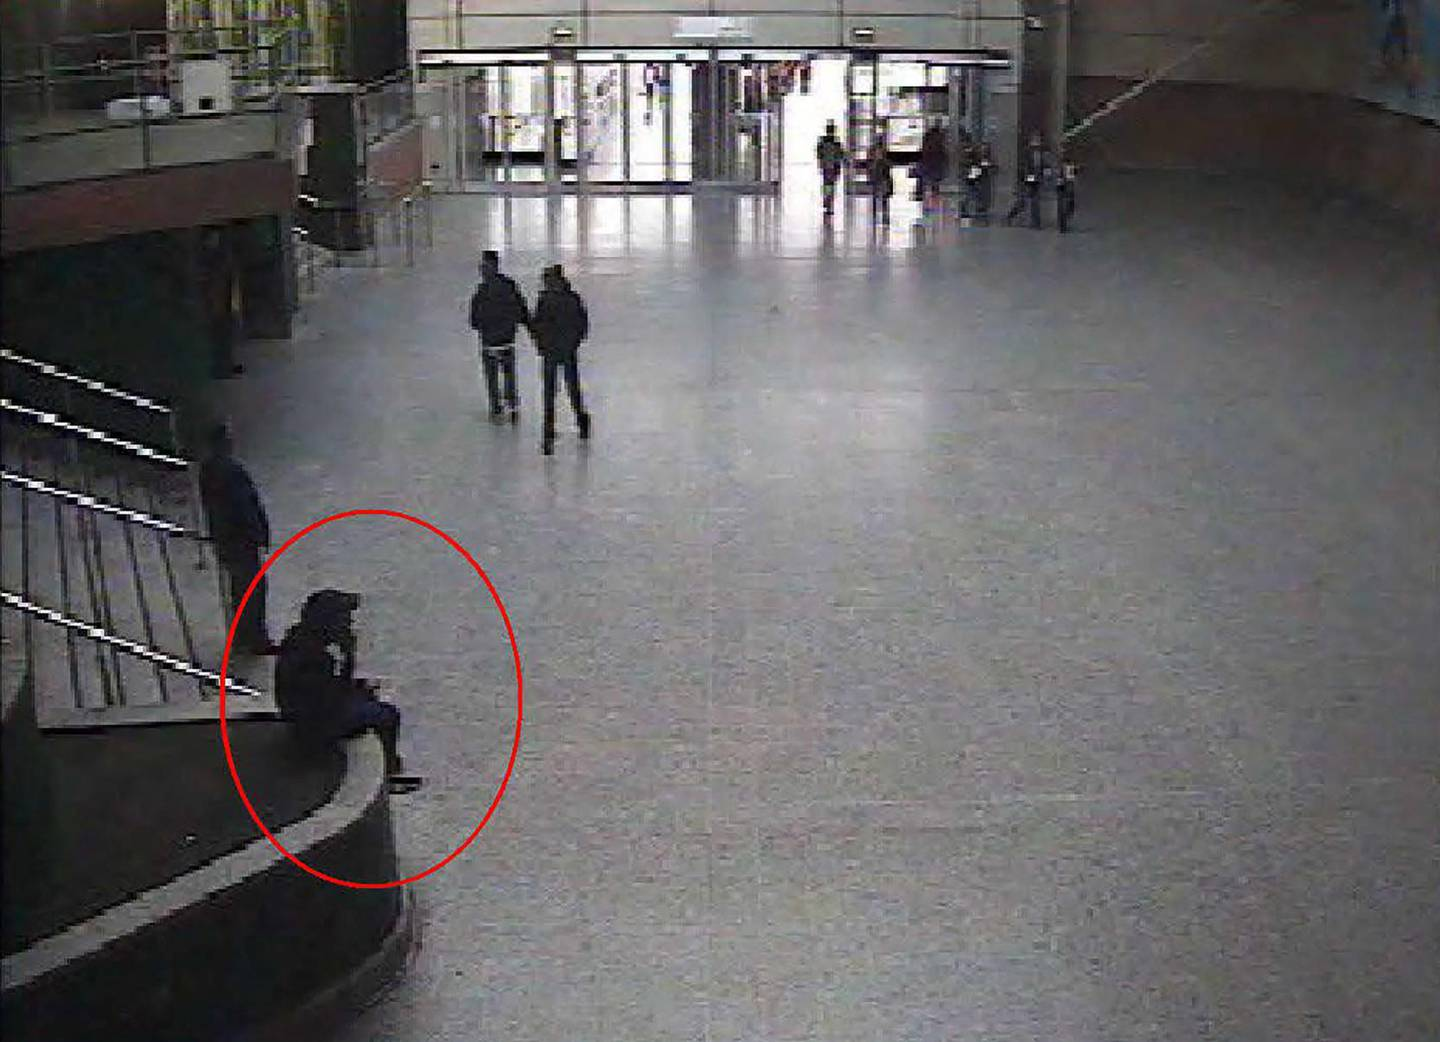 """(FILES) In this file photo taken on May 21, 2017 shows suicide bomber Salman Abedi sitting in the foyer of the Manchester Arena on May 21, 2017. Security teams at Britain's Manchester Arena """"should have prevented or minimised"""" the impact of the 2017 terror attack at an Ariana Grande concert that killed 22 people, a public inquiry found on June 17, 2021. - RESTRICTED TO EDITORIAL USE - MANDATORY CREDIT """"AFP PHOTO / Manchester Arena Inquiry """" - NO MARKETING - NO ADVERTISING CAMPAIGNS - DISTRIBUTED AS A SERVICE TO CLIENTS  / AFP / Manchester Arena Inquiry  / - / RESTRICTED TO EDITORIAL USE - MANDATORY CREDIT """"AFP PHOTO / Manchester Arena Inquiry """" - NO MARKETING - NO ADVERTISING CAMPAIGNS - DISTRIBUTED AS A SERVICE TO CLIENTS"""